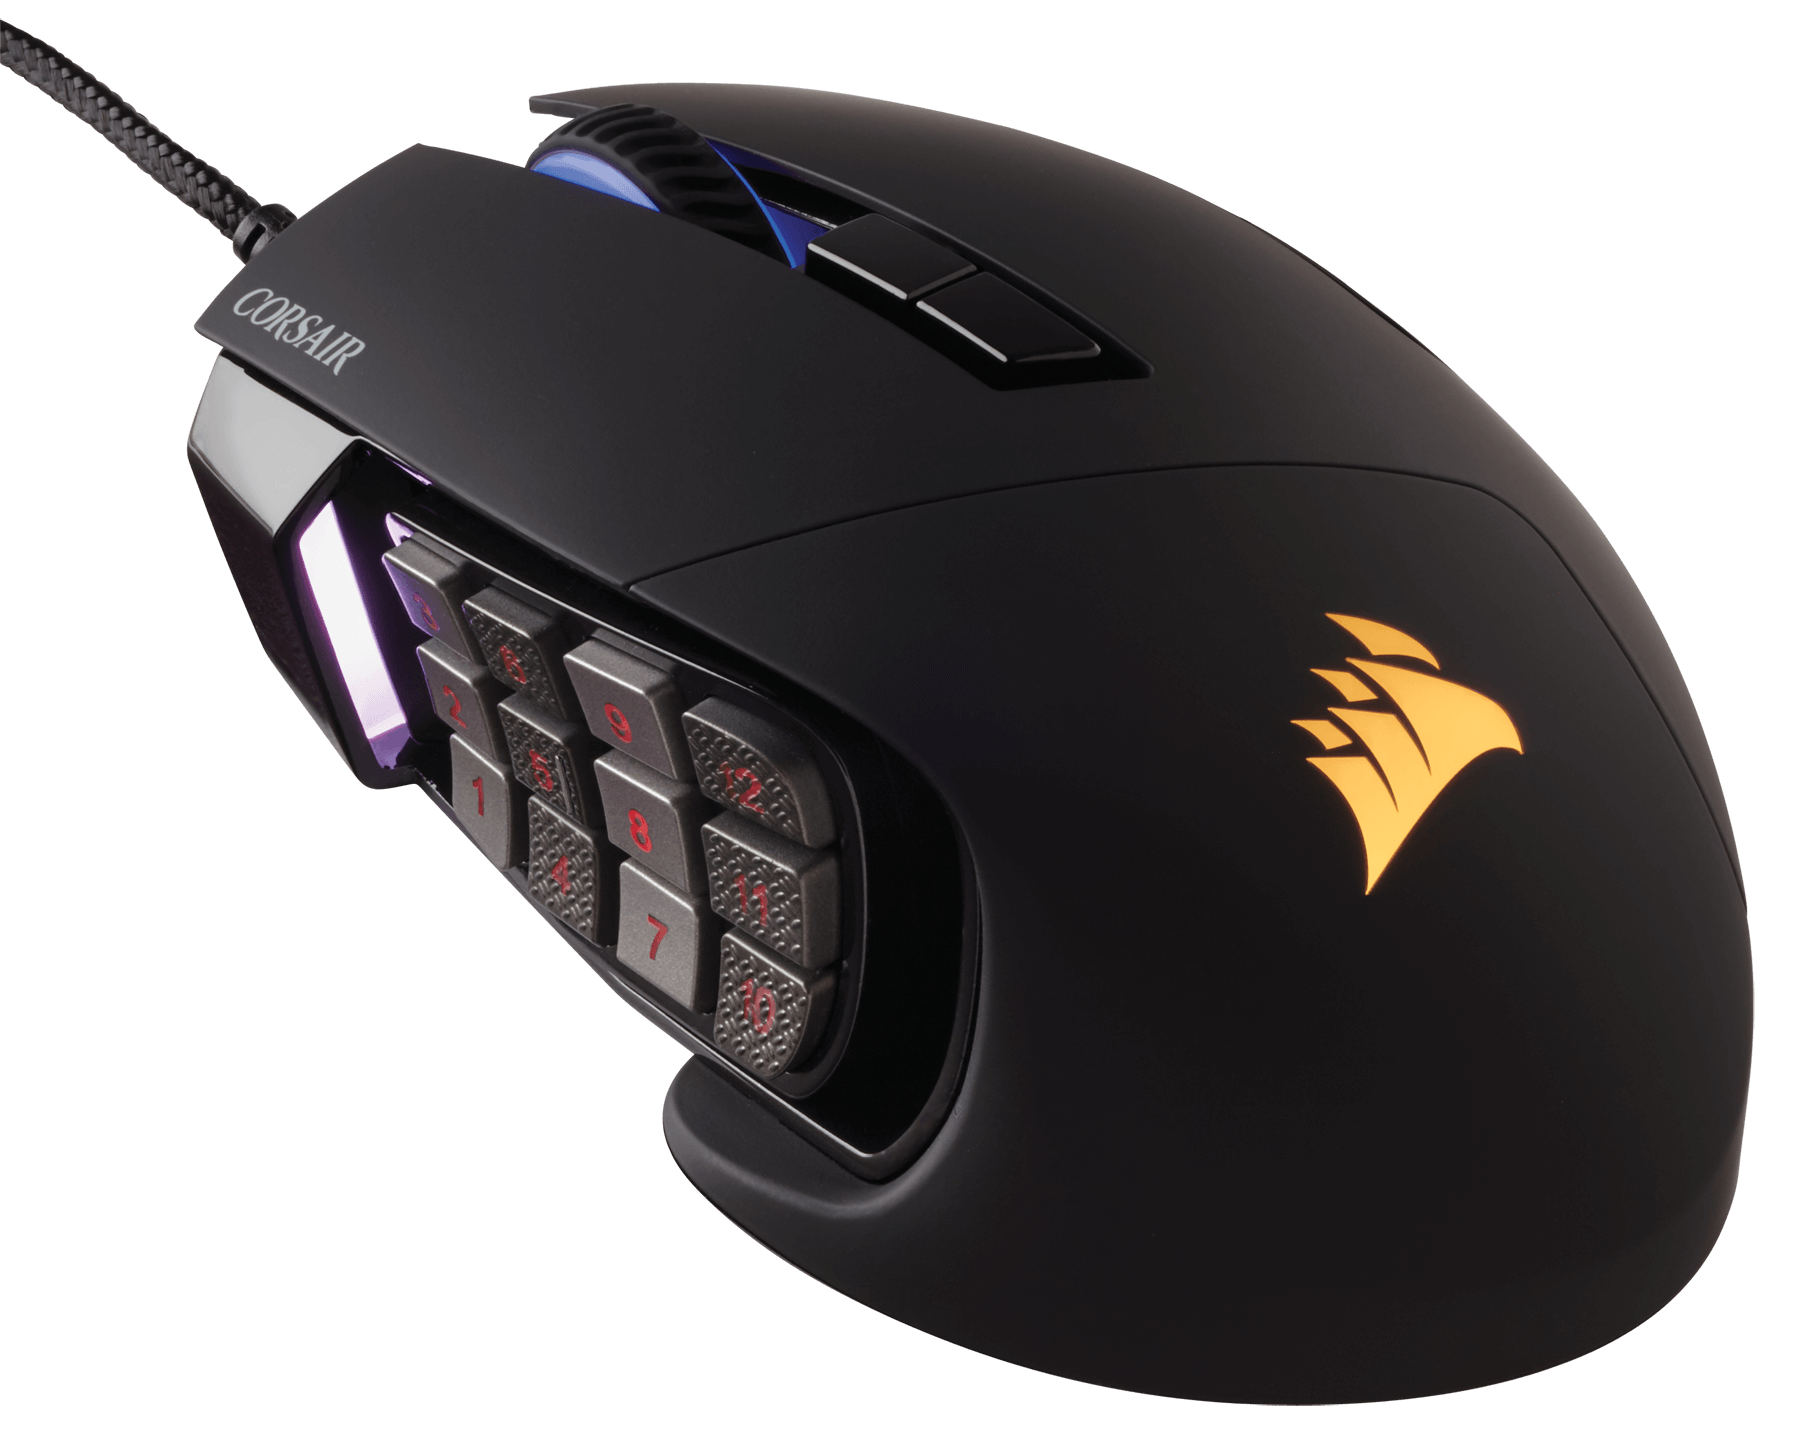 CORSAIR推出新款Scimitar PRO RGB Optical MOBA/MMO電競滑鼠 - XFastest - Scimitar_PRO_BLK_01.png